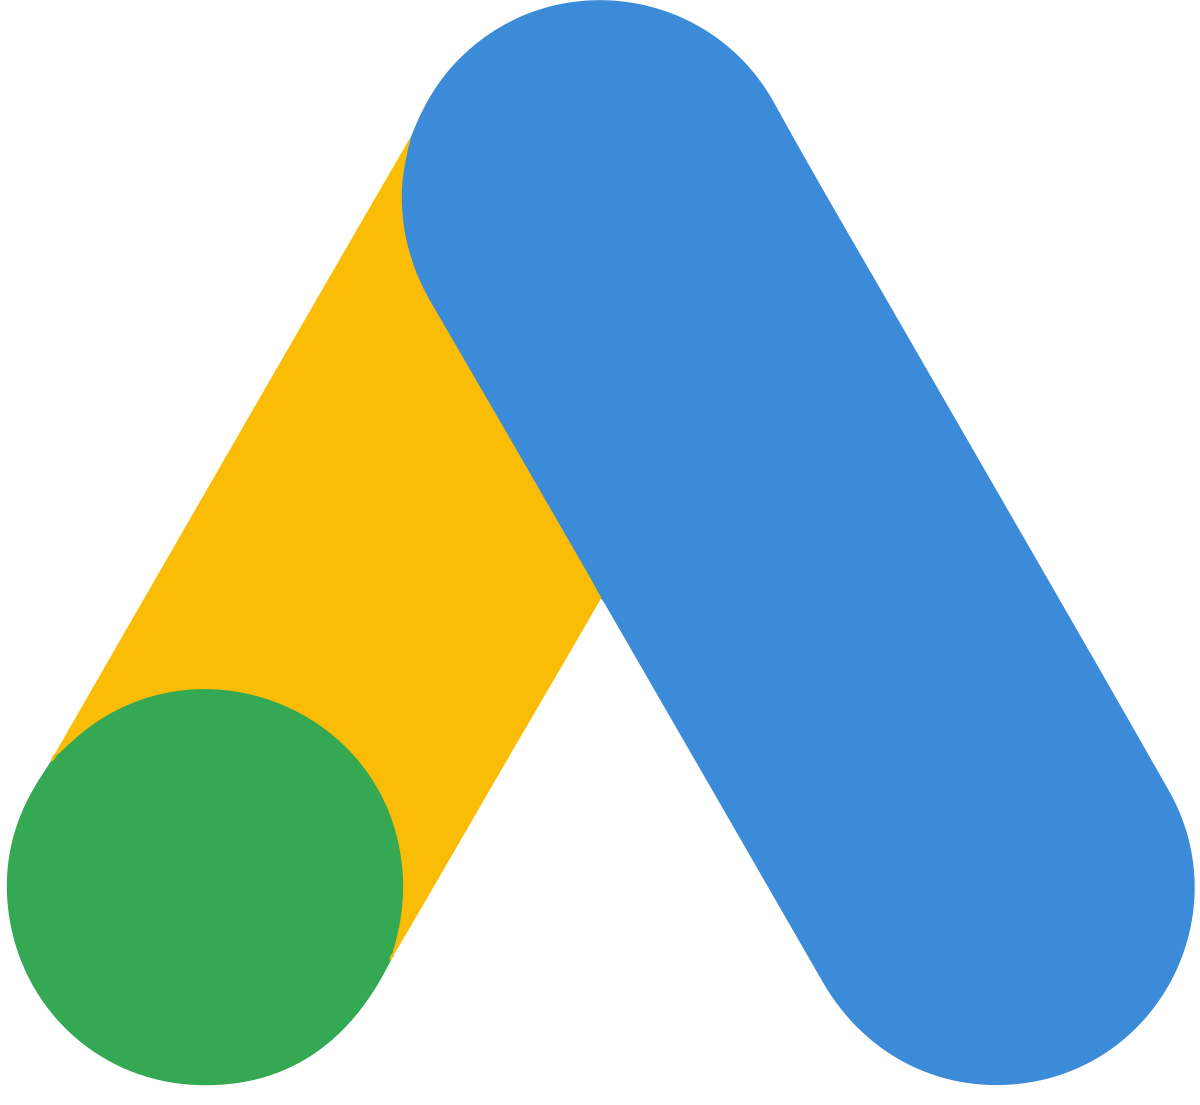 Google Ads is an online advertising platform where advertisers bid to display brief advertisements, service offerings, product listings.